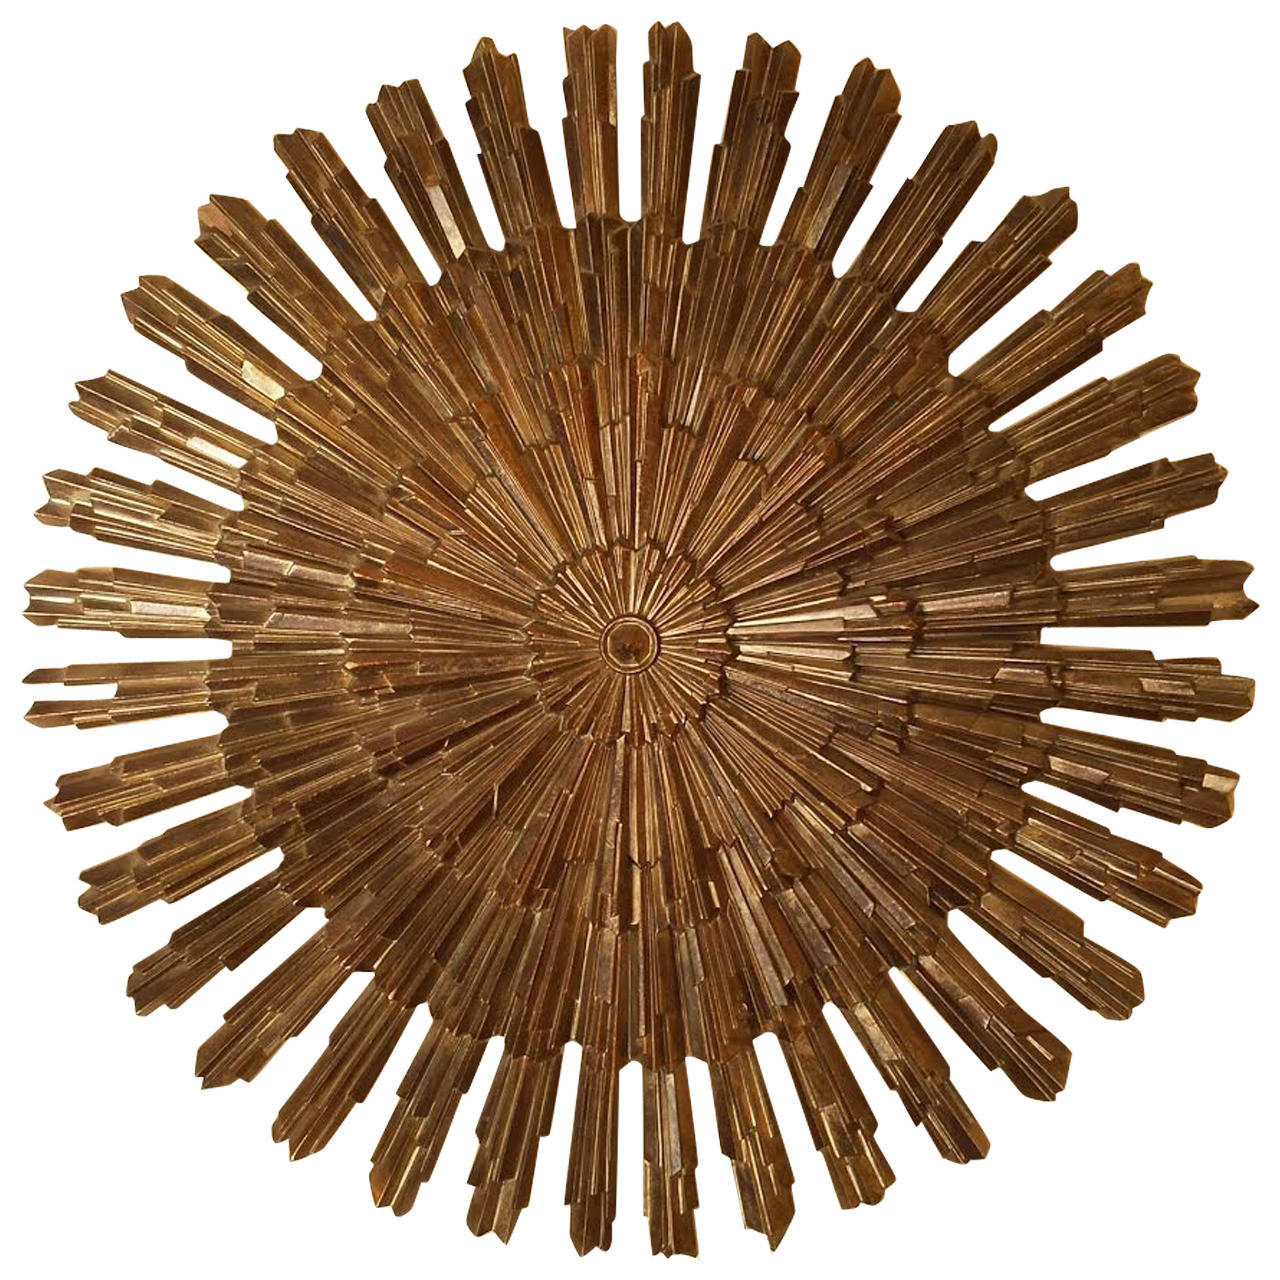 Sunburst starburst wood wall decor at 1stdibs - Sculpture wall decor ...